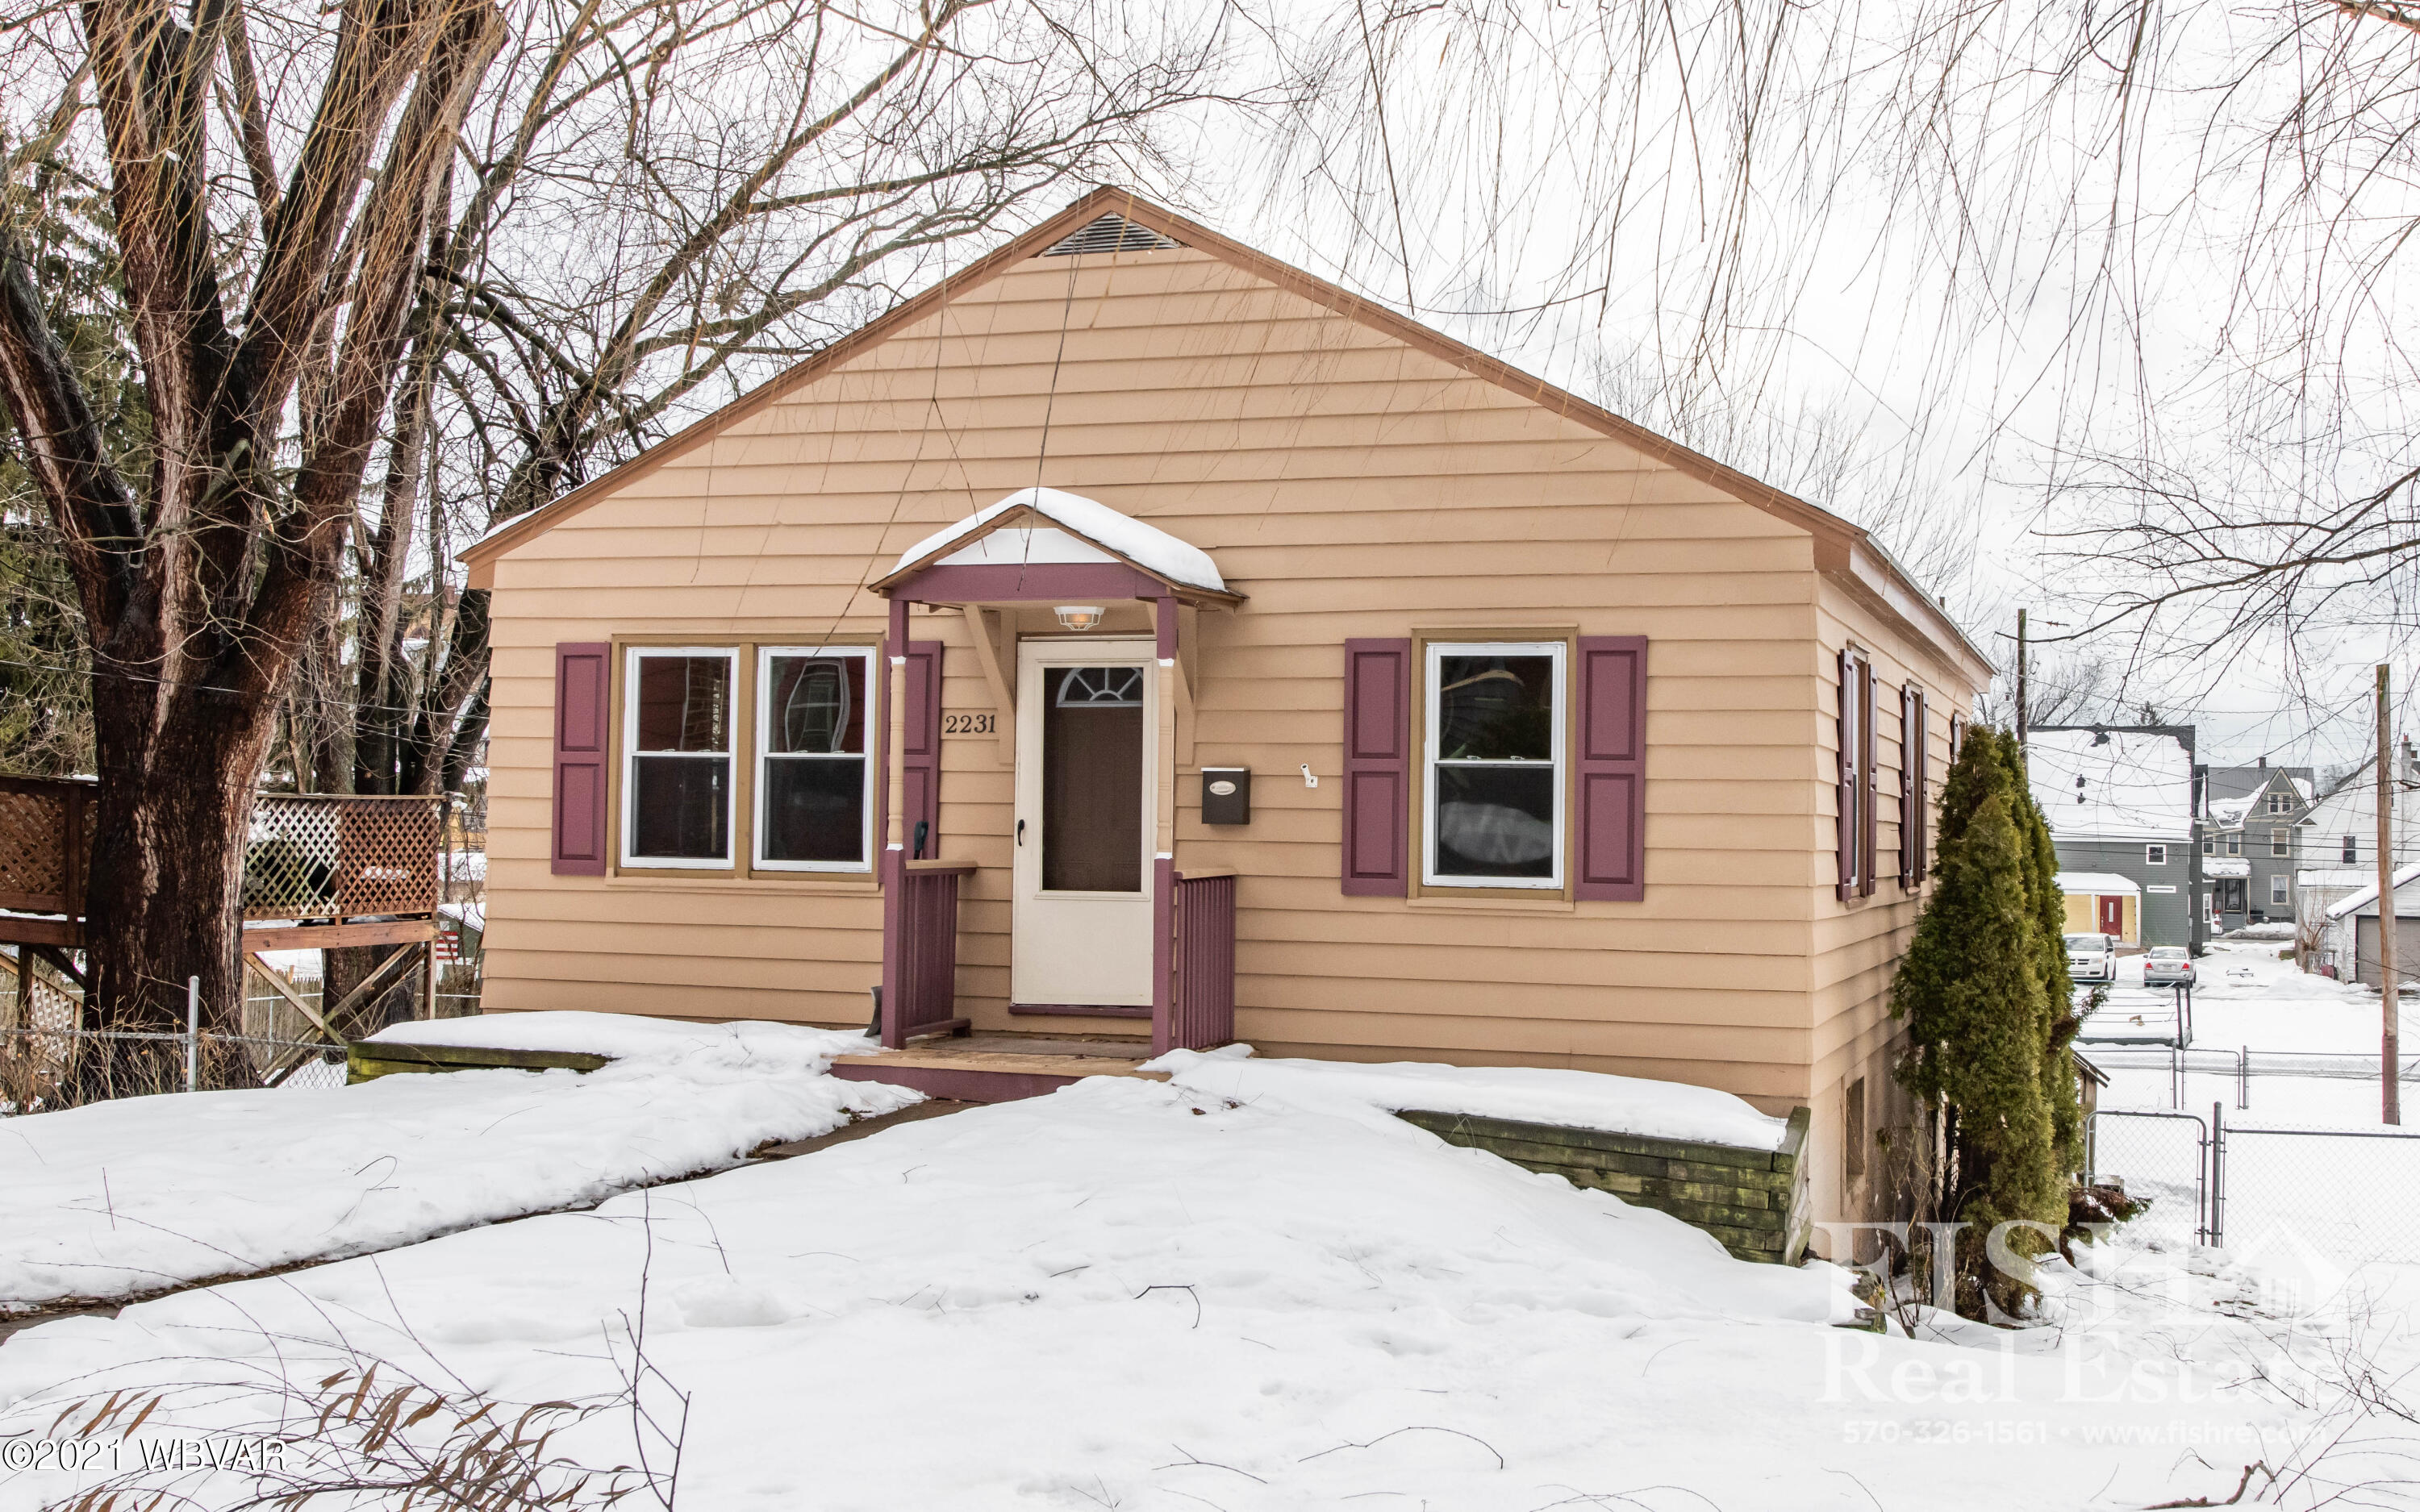 2231 NEWBERRY STREET, Williamsport, PA 17701, 3 Bedrooms Bedrooms, ,2 BathroomsBathrooms,Residential,For sale,NEWBERRY,WB-91910